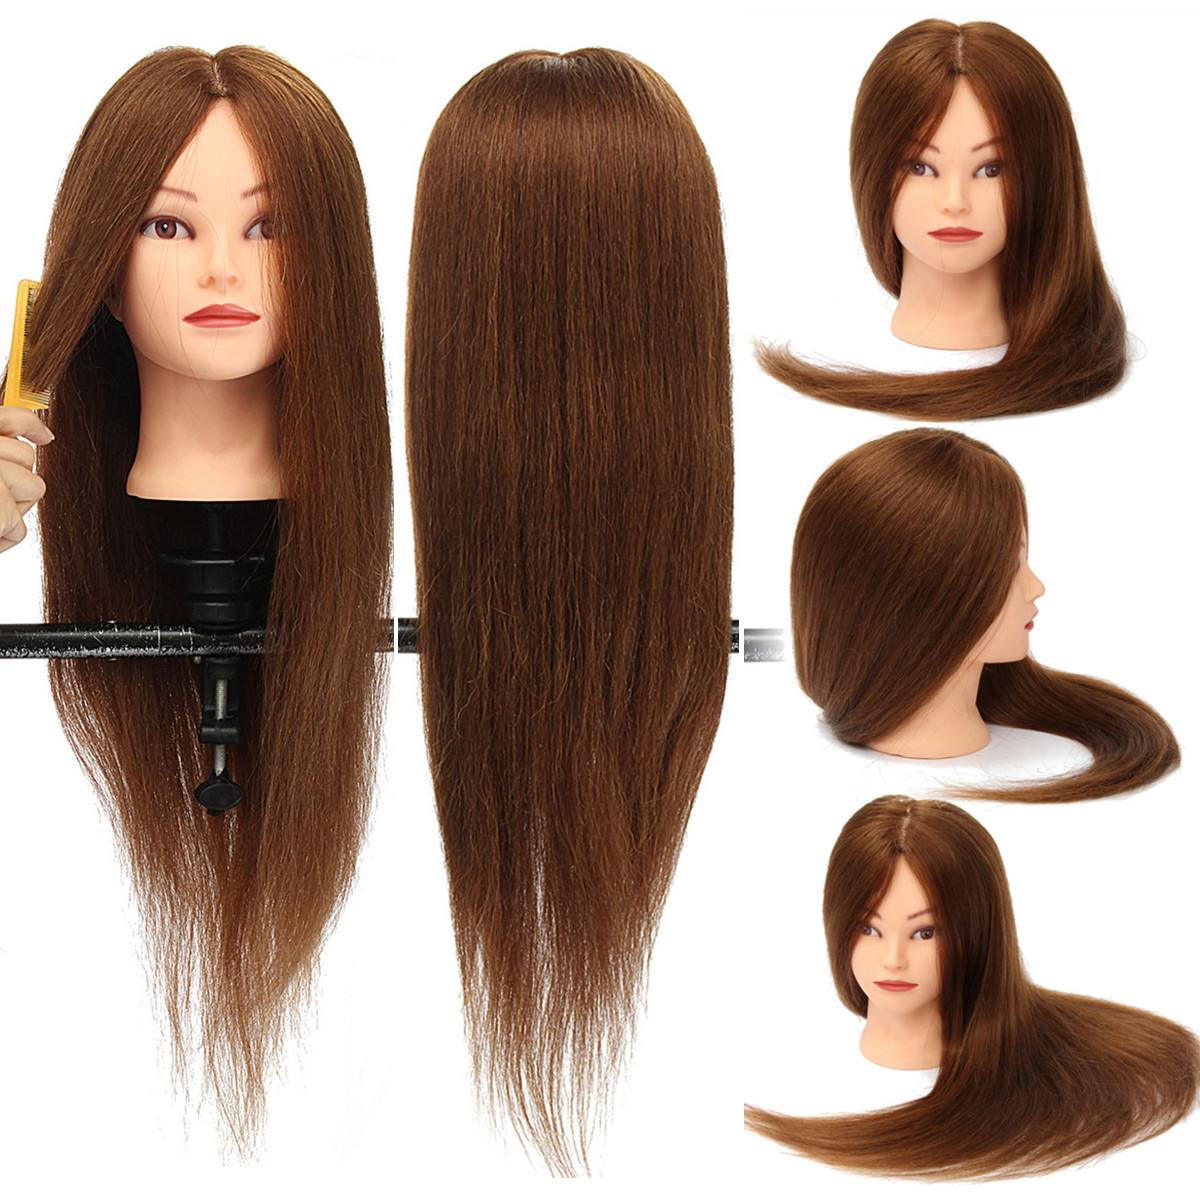 26 Inch 100% Real Human Hair Training Head Hairdresser Hairdressing Mannequin With Clamp Holder Women Lady Mannequin New26 Inch 100% Real Human Hair Training Head Hairdresser Hairdressing Mannequin With Clamp Holder Women Lady Mannequin New